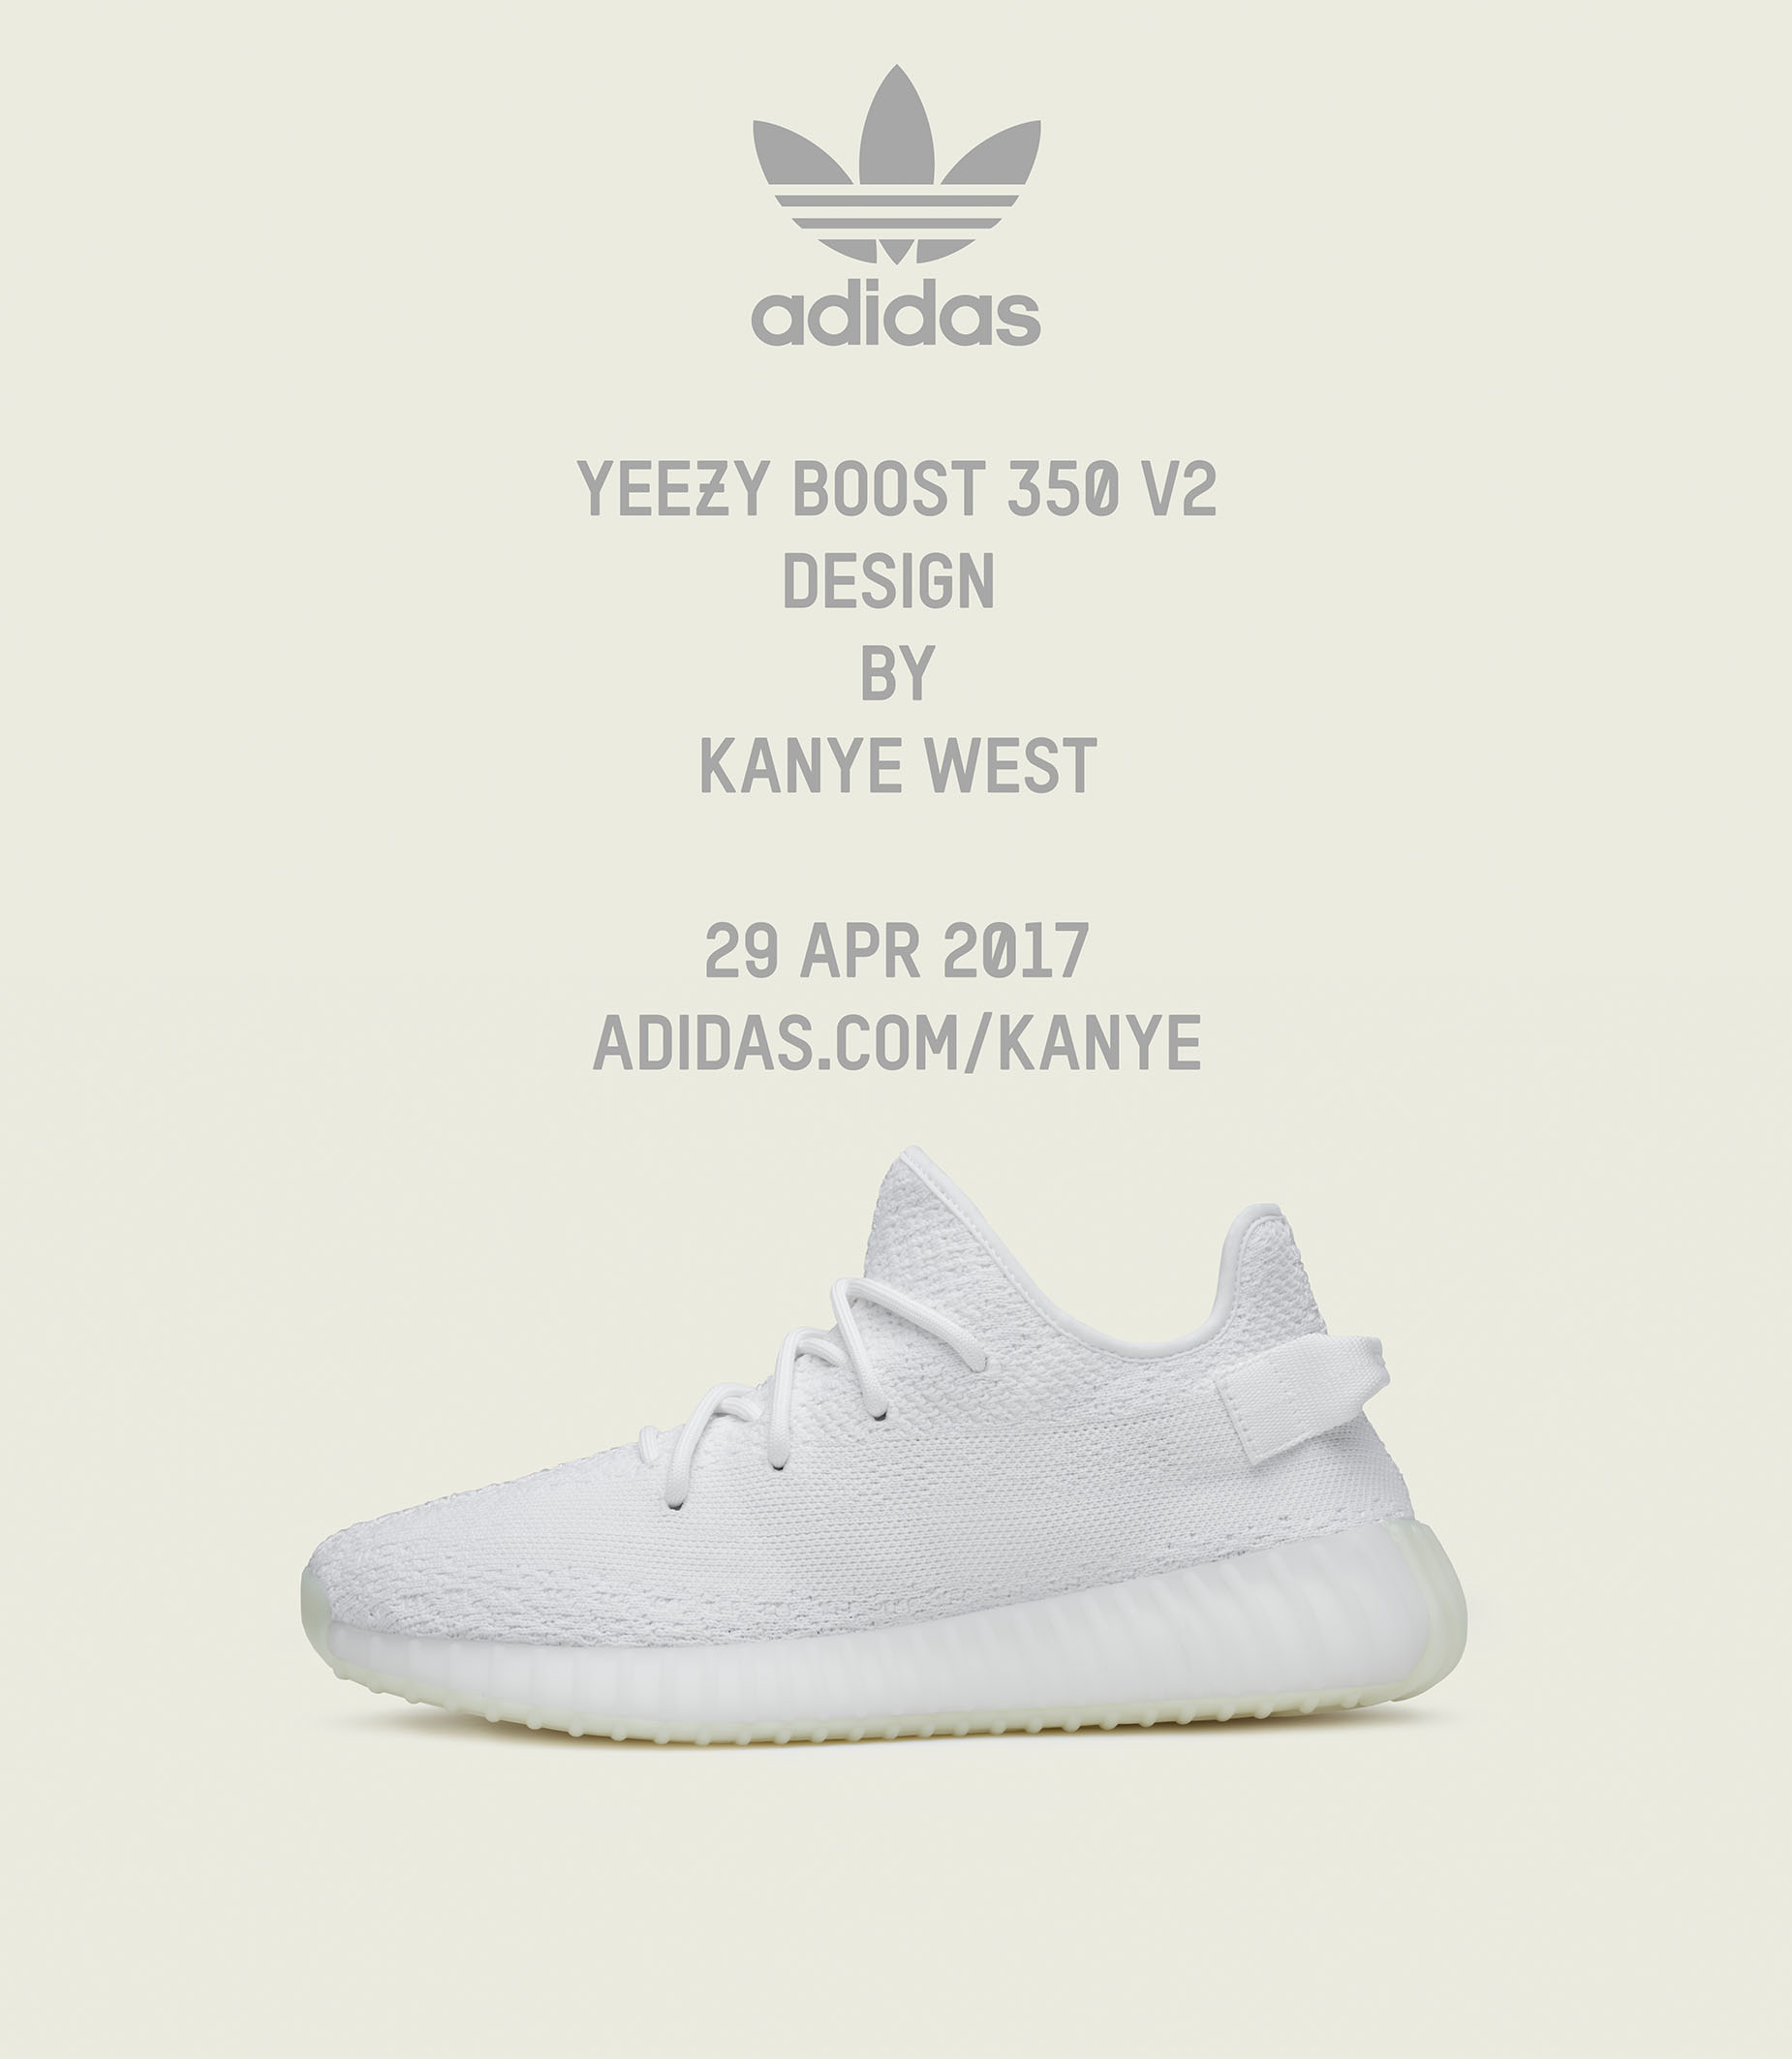 APRIL 2017 – KANYE WEST and adidas announce the YEEZY BOOST 350 Cream White d43653d0b